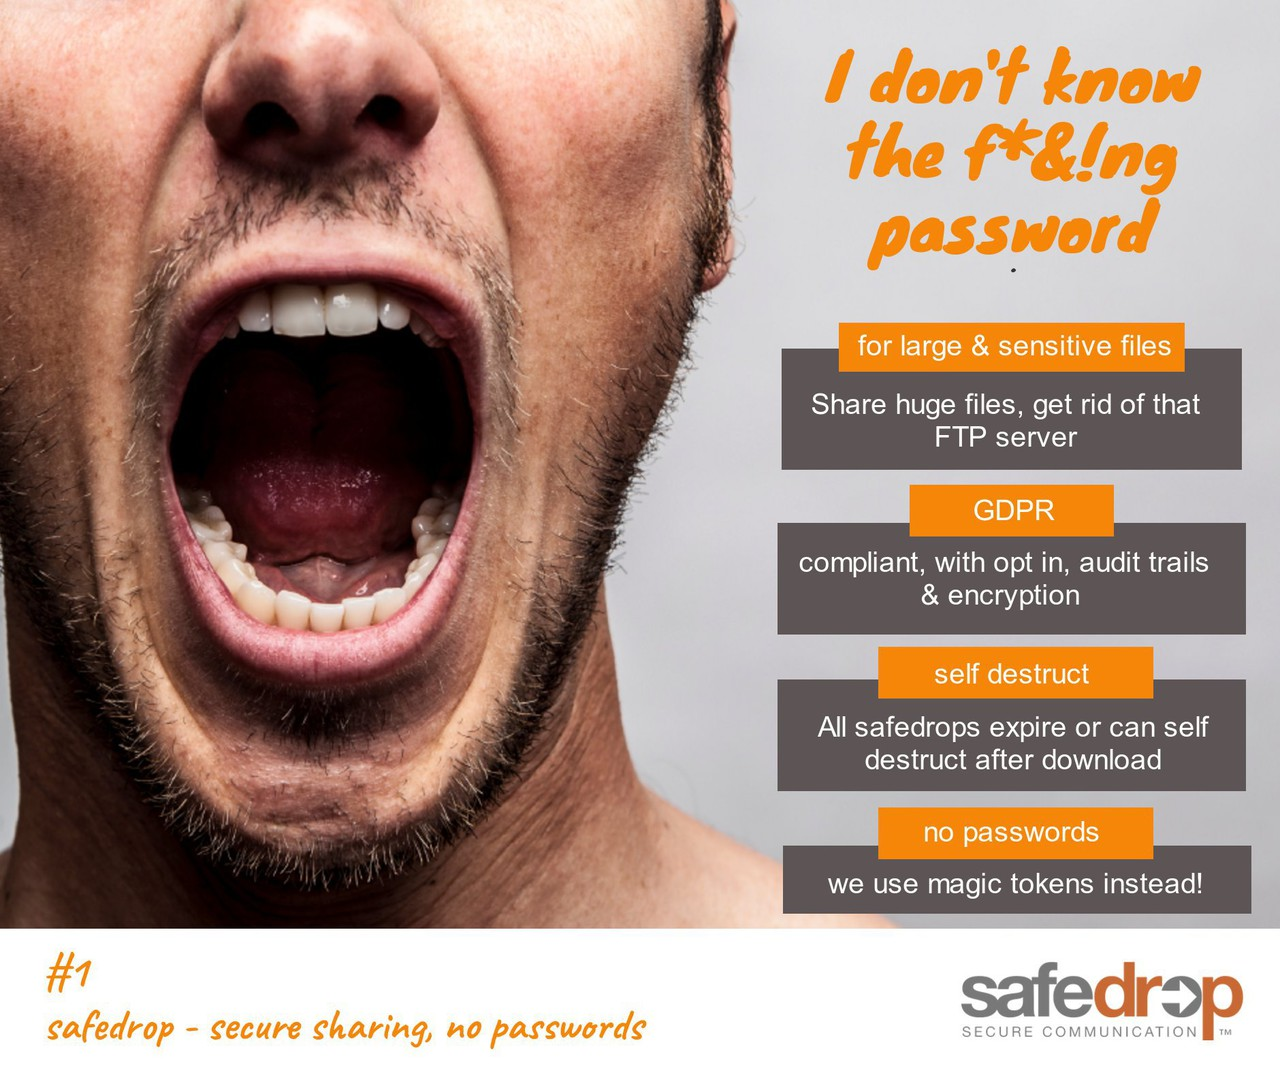 safedrop - no passwords